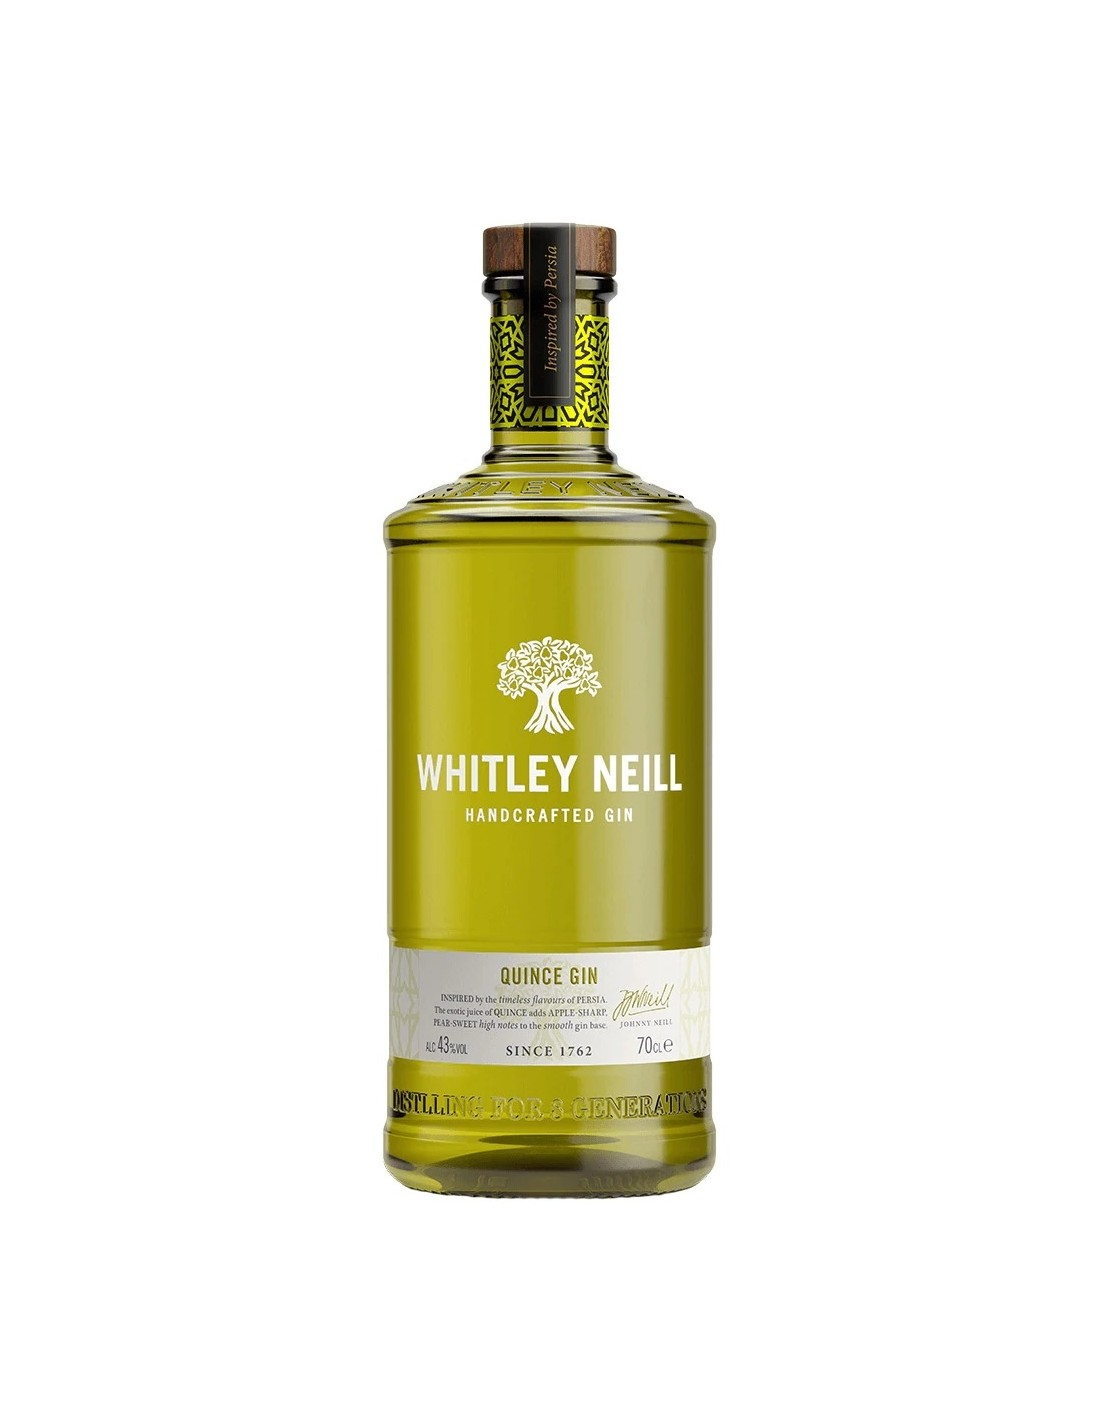 Gin Whitley Neill Quince, 43% alc., 0.7L